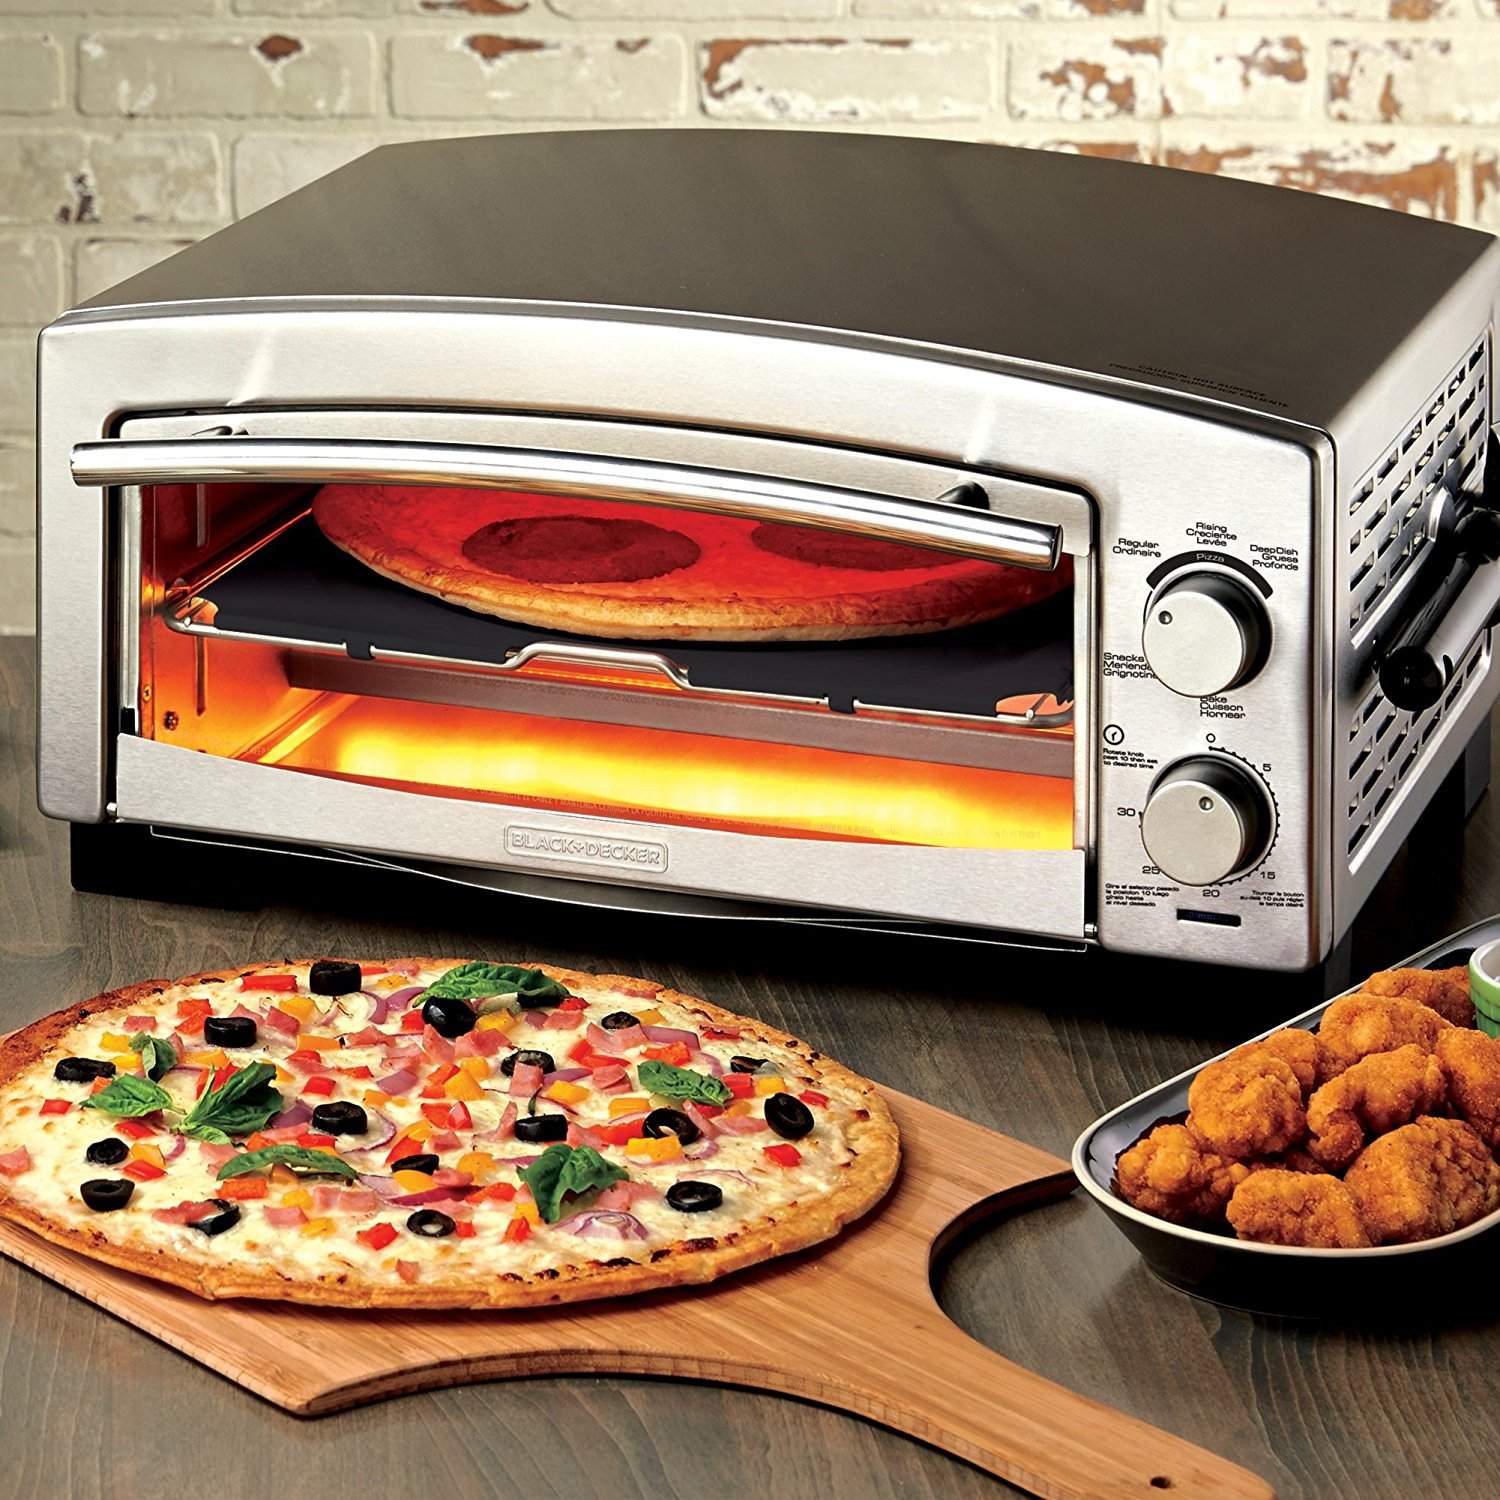 BLACK+DECKER 5-Minute Pizza Oven $69.99 (reg. $149.99)